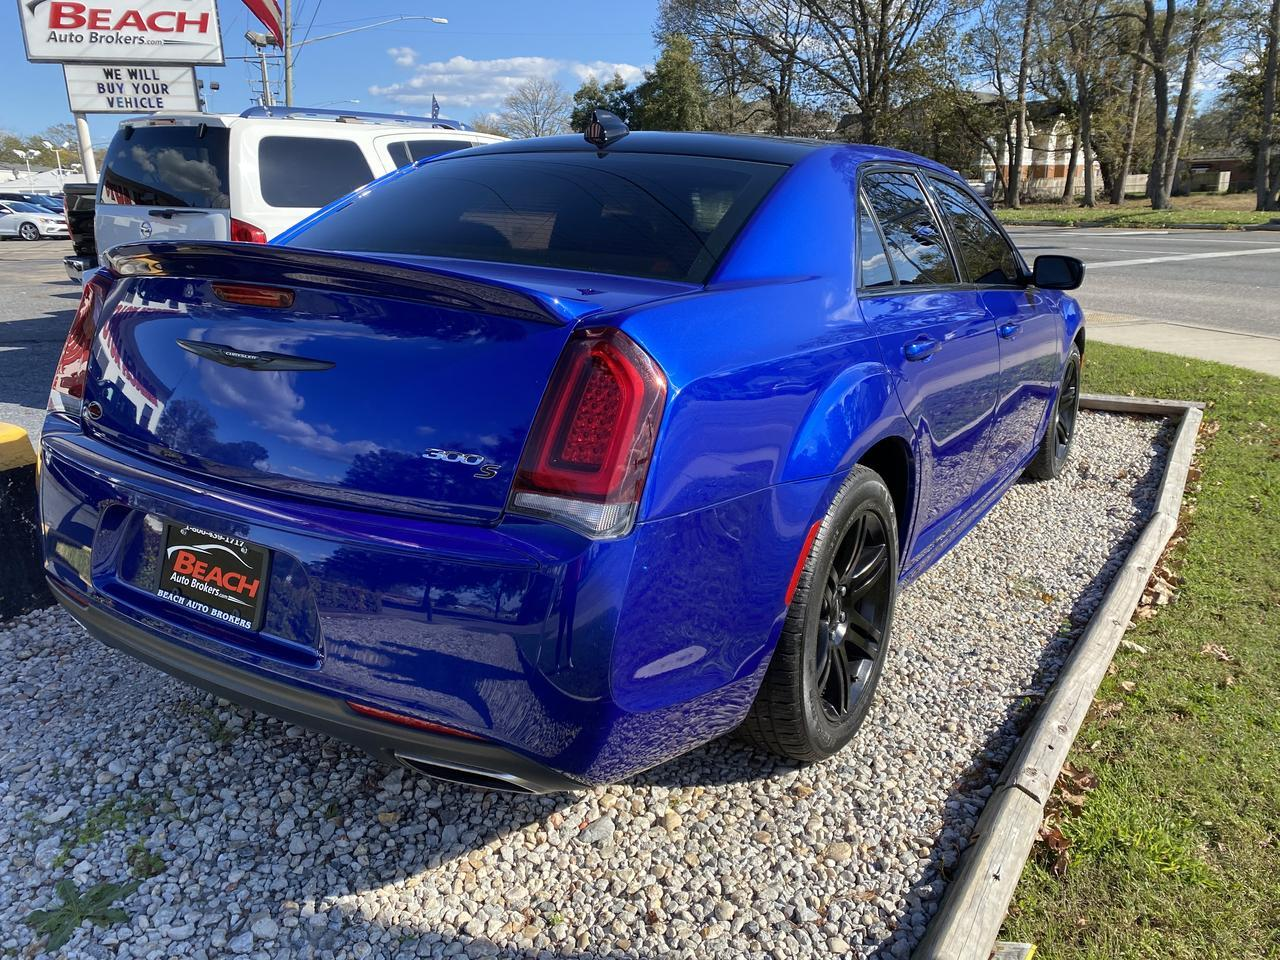 2018 CHRYSLER 300 S, WARRANTY, HEATED SEATS, NAV, KEYLESS START, SIRIUS RADIO, CLEAN CARFAX, 1 OWNER! Norfolk VA